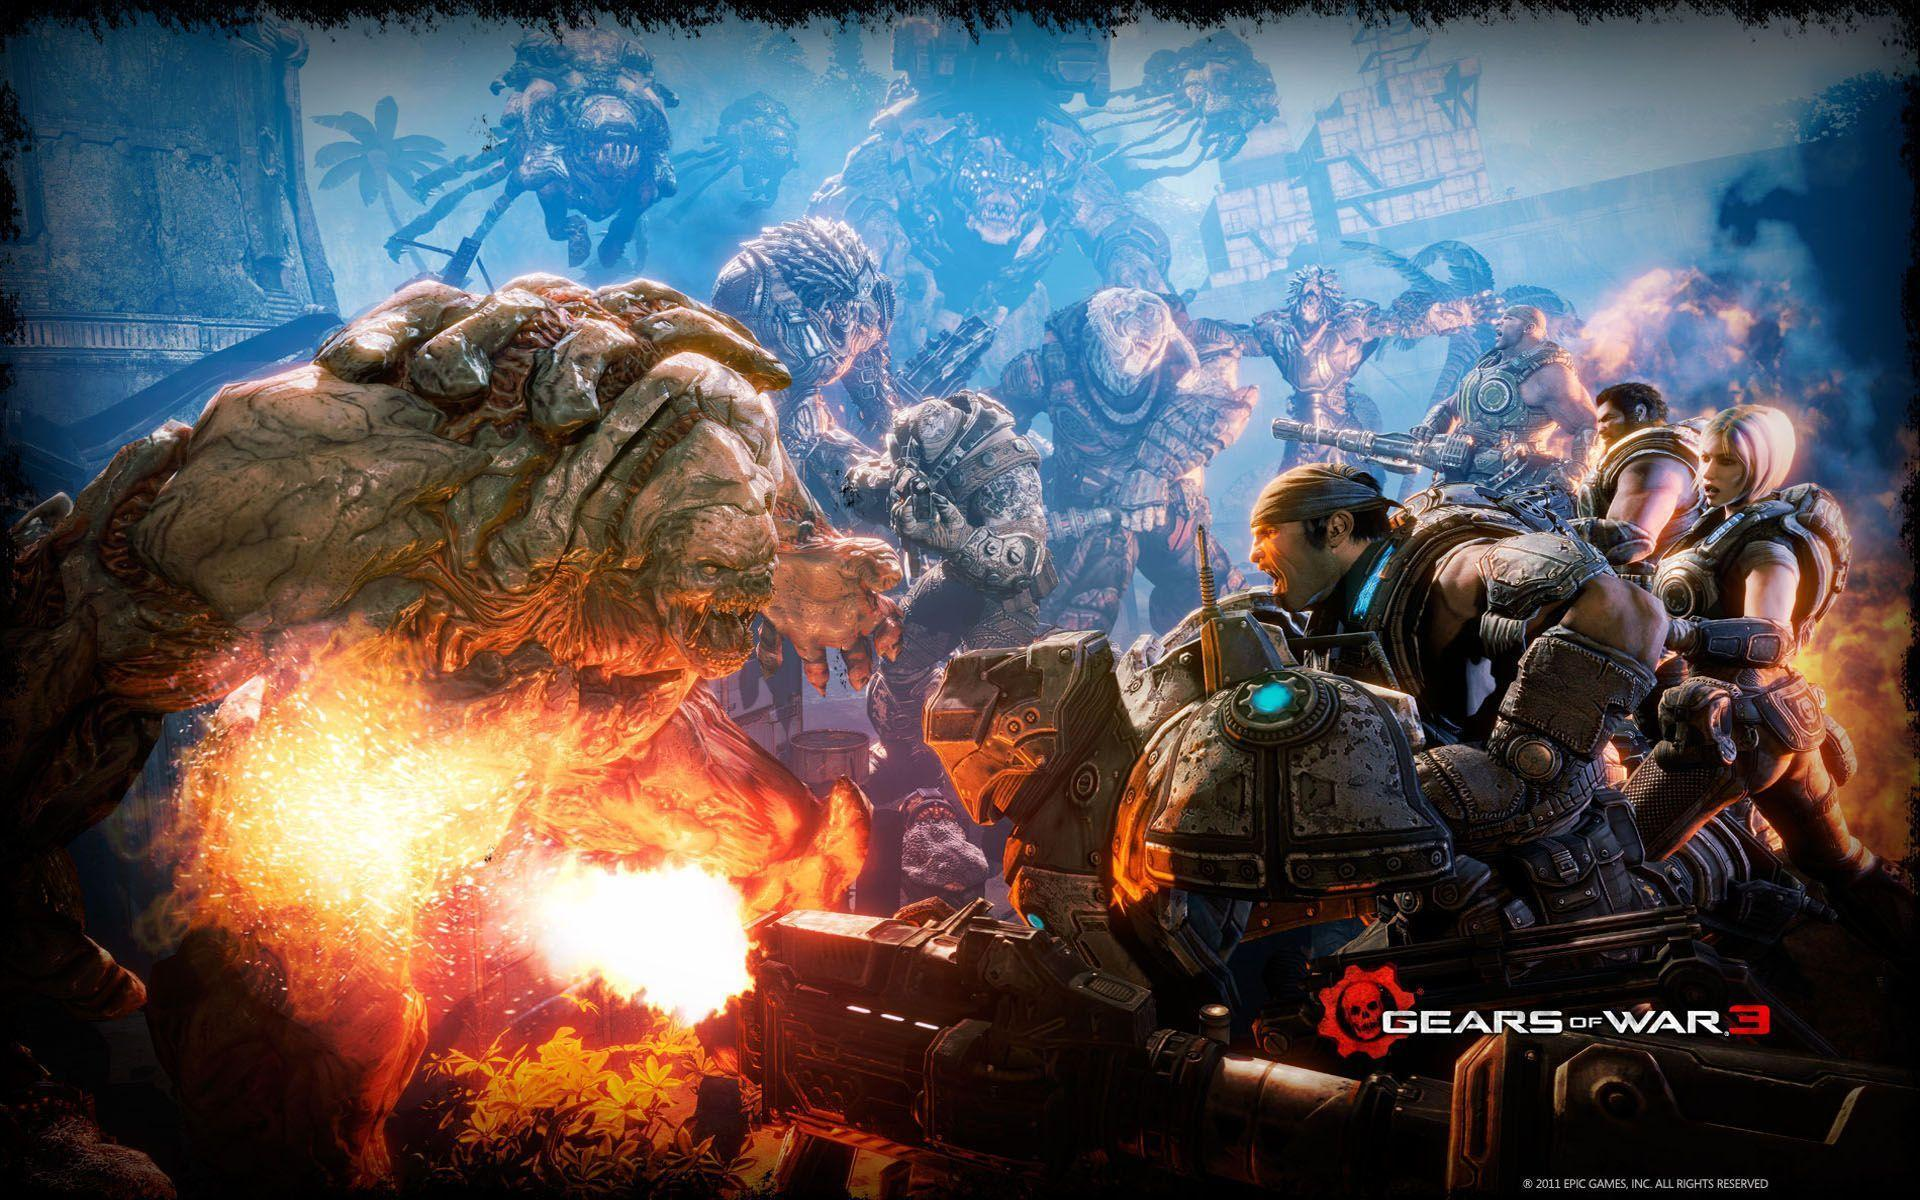 Download Gears of War 3 Battle Wallpapers High Resolution ~ HD